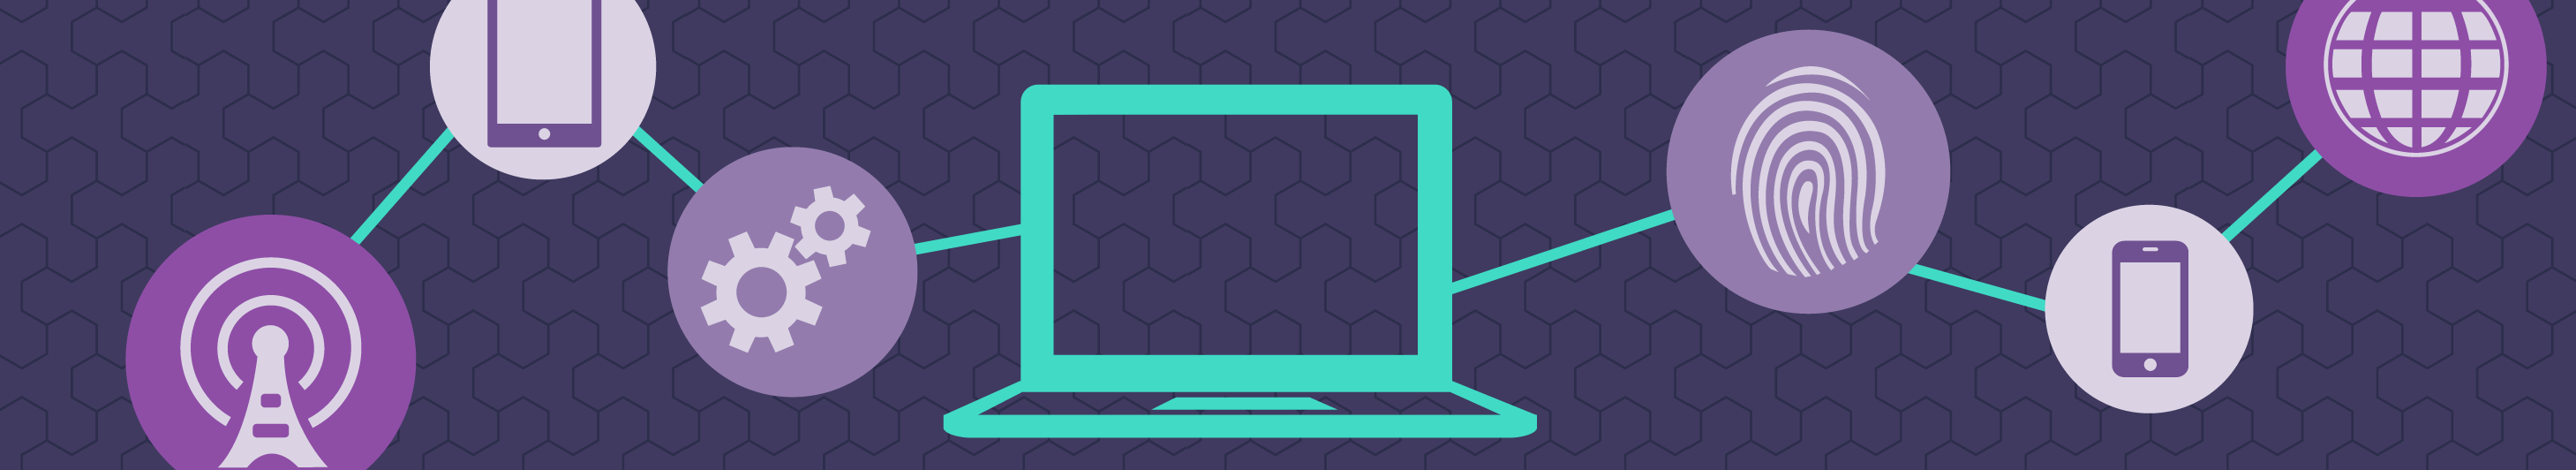 illustration of a laptop in a purple background